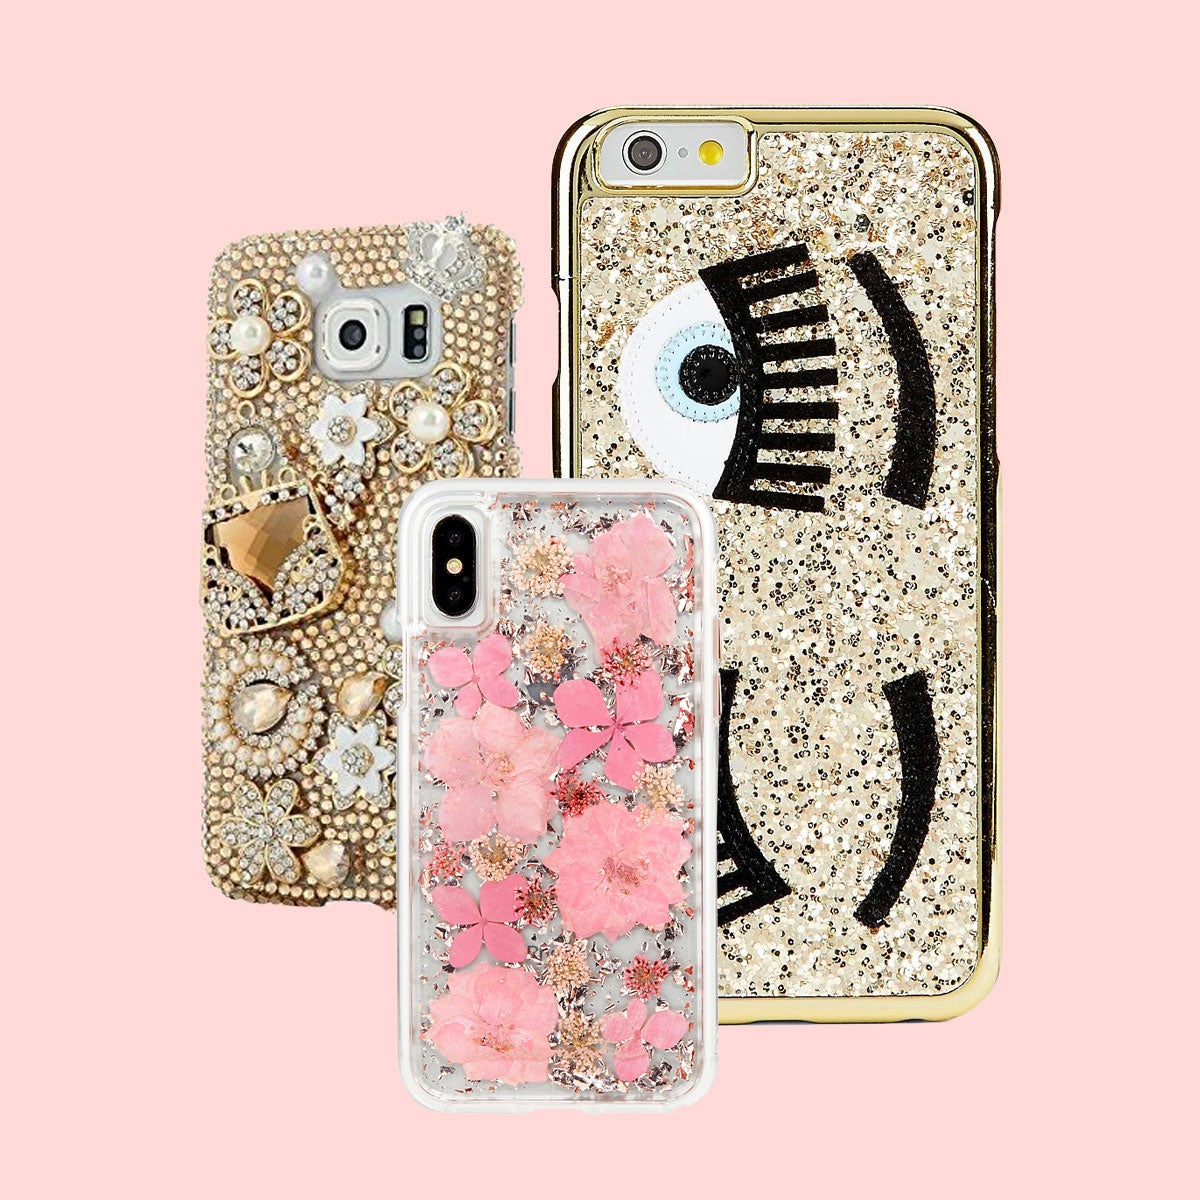 Phone Case Gift Ideas - Essence